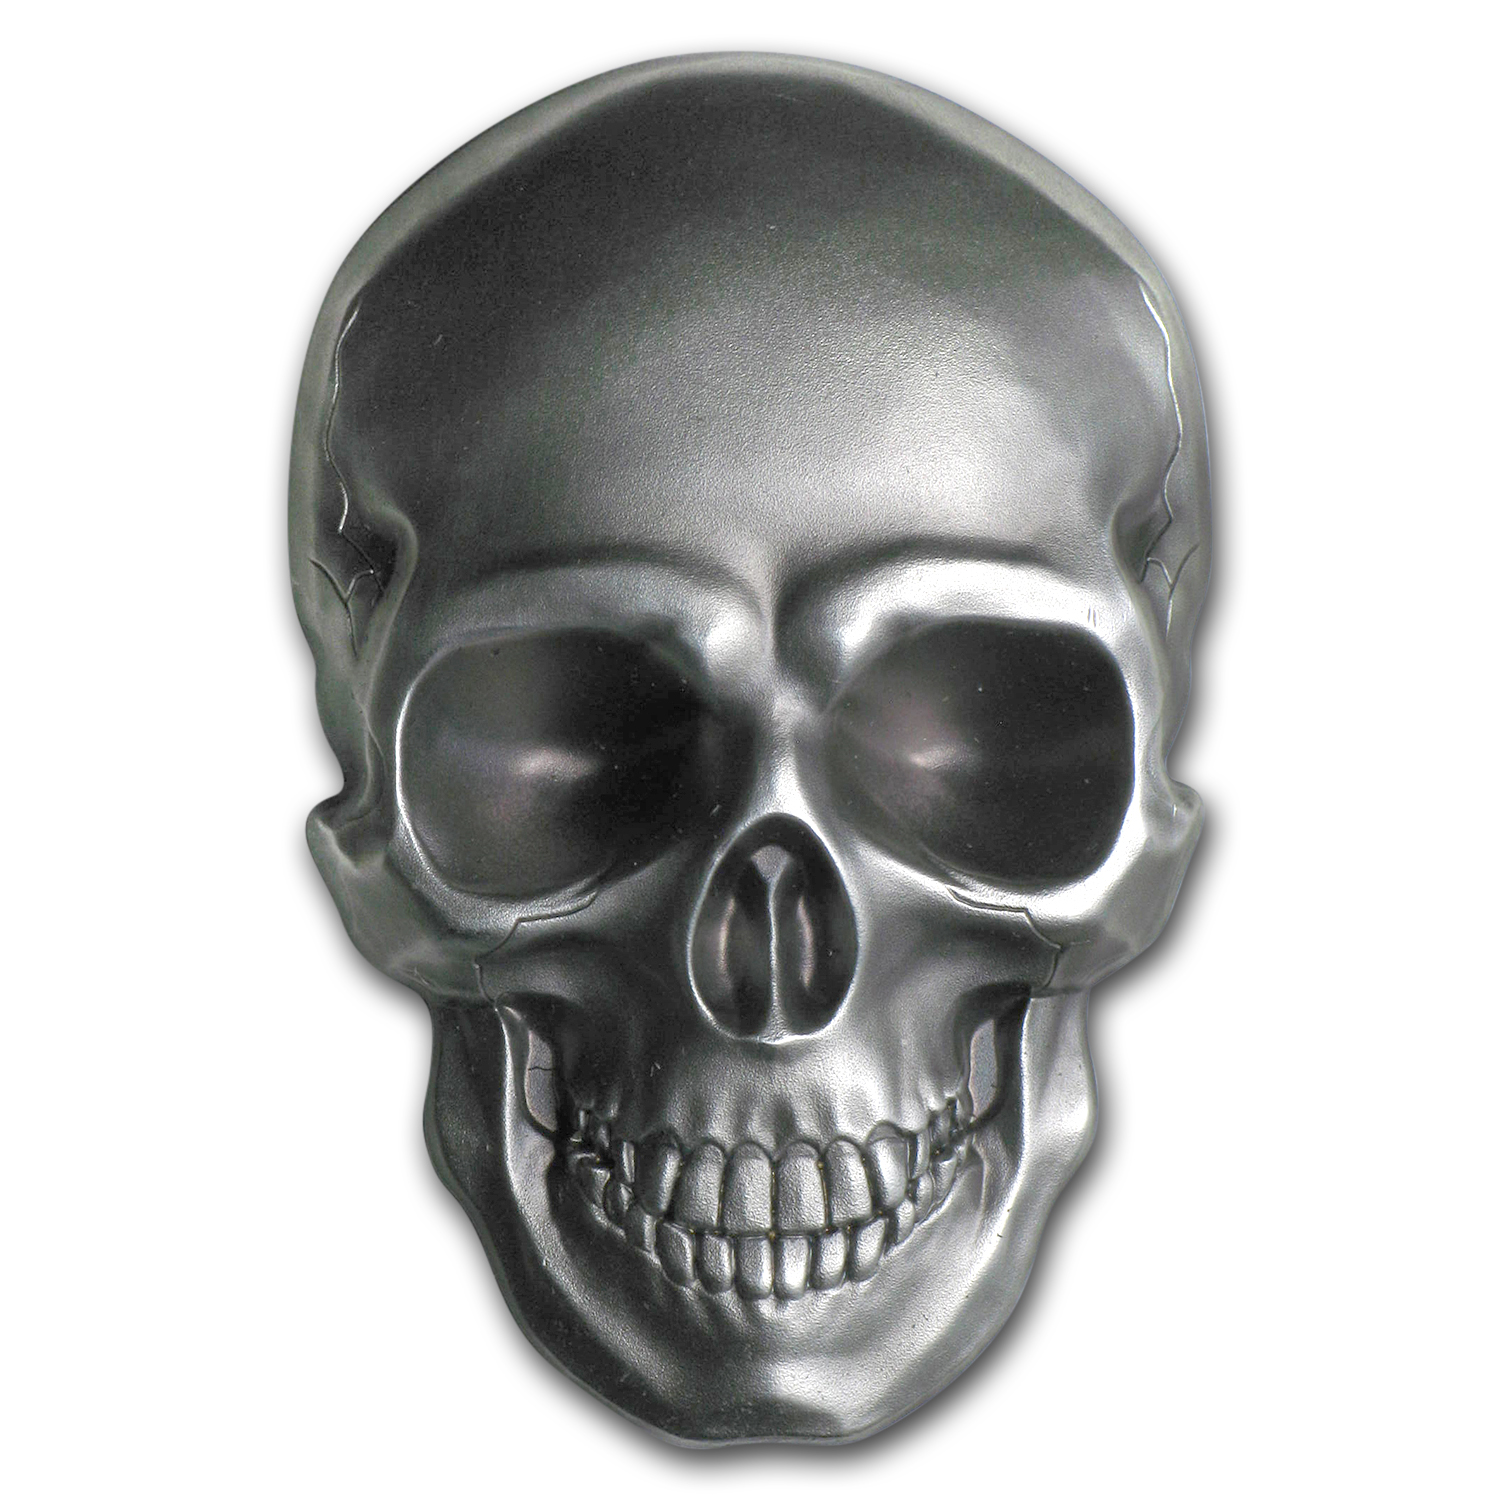 2016 Palau 1 oz Silver Antique Finish Skull Number 1